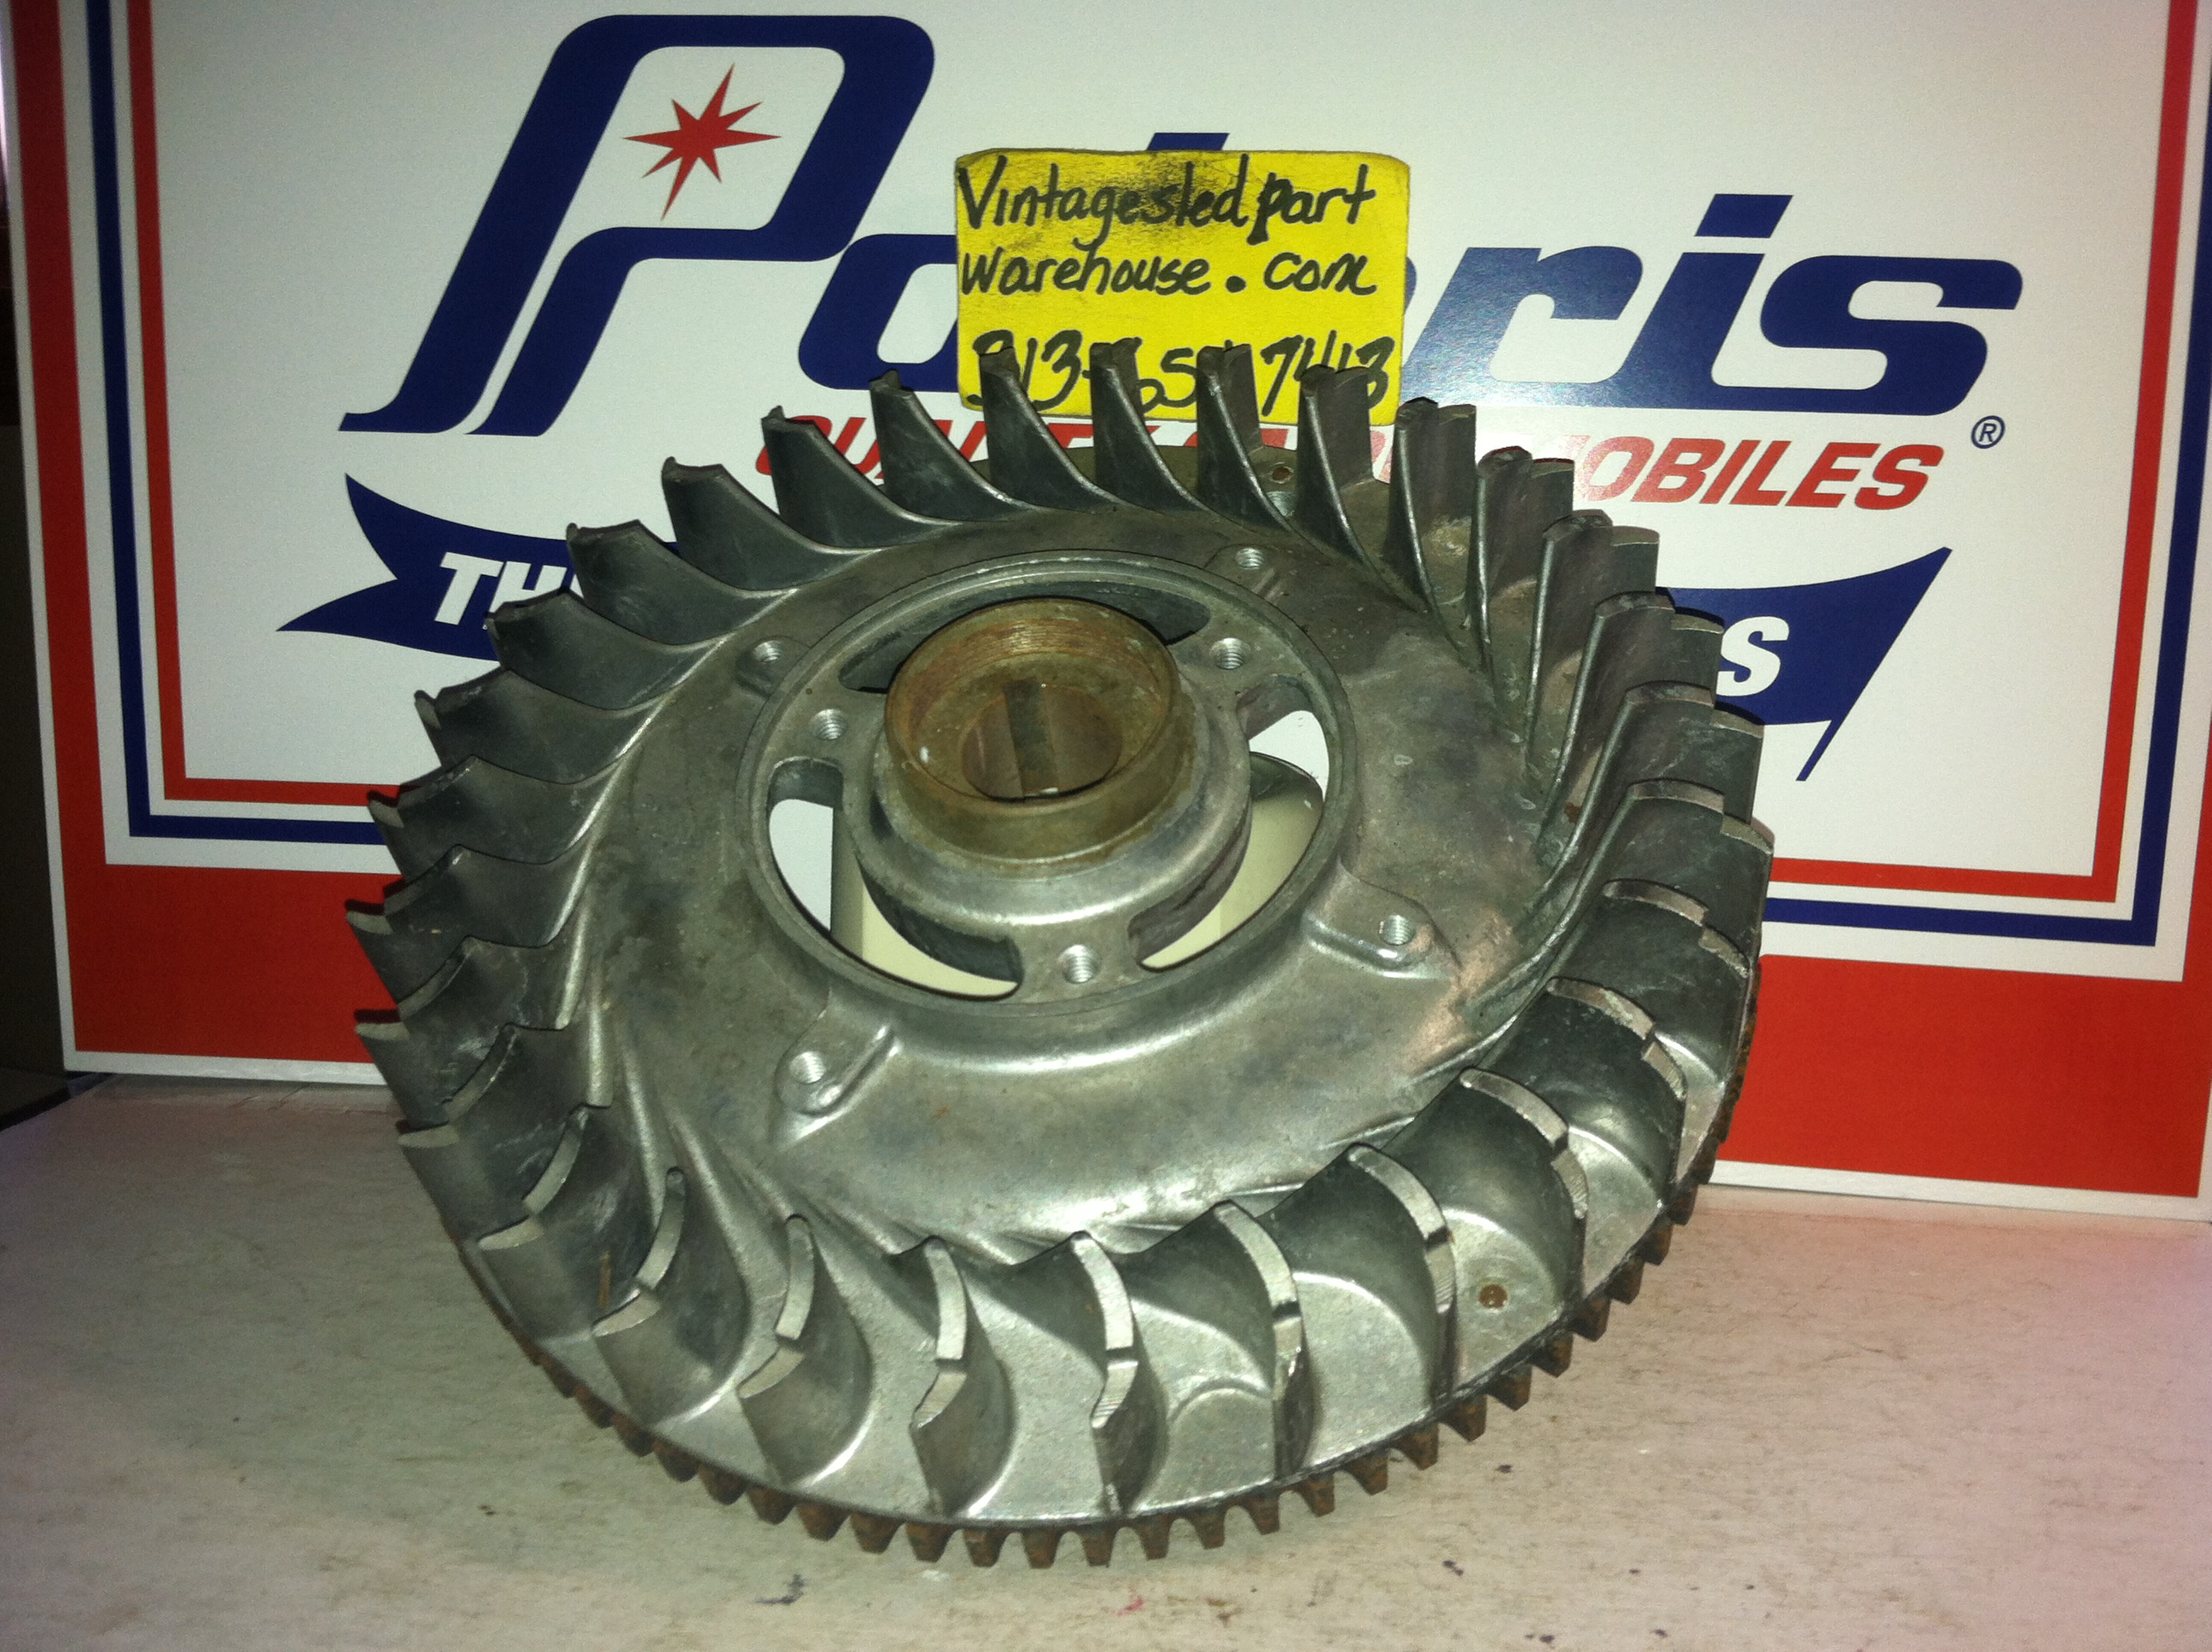 VINTAGE POLARIS JLO ROCKWELL FLYWHEEL 454.14.010.00 VINTAGE SNOWMOBILE JLO ROCKWELL  ENGINE FLYWHEEL 454.14.010.00